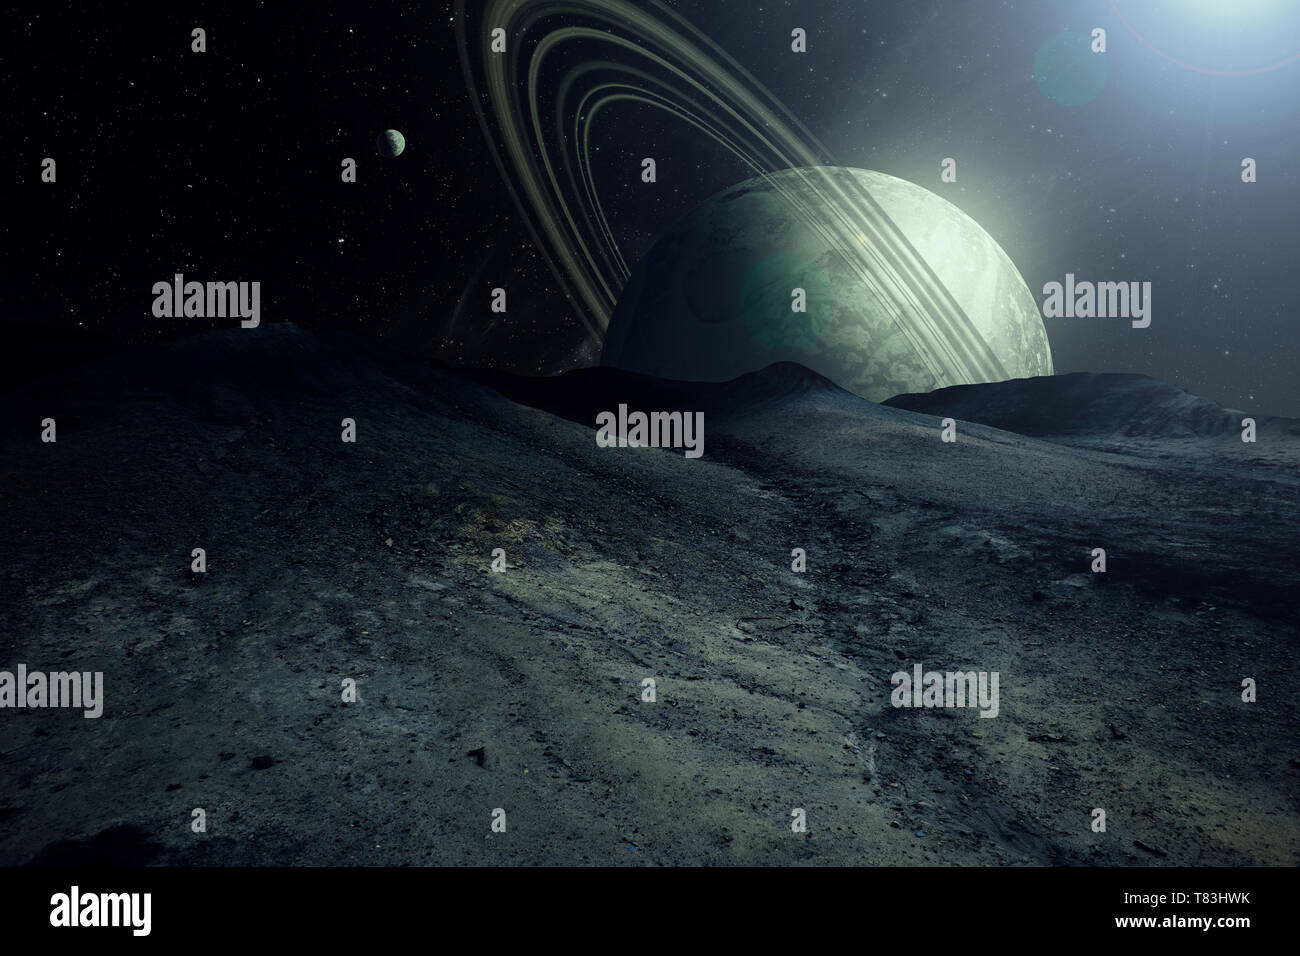 alien planet landscape with planets and moons in the sky, space exploration surreal illustration - Stock Image